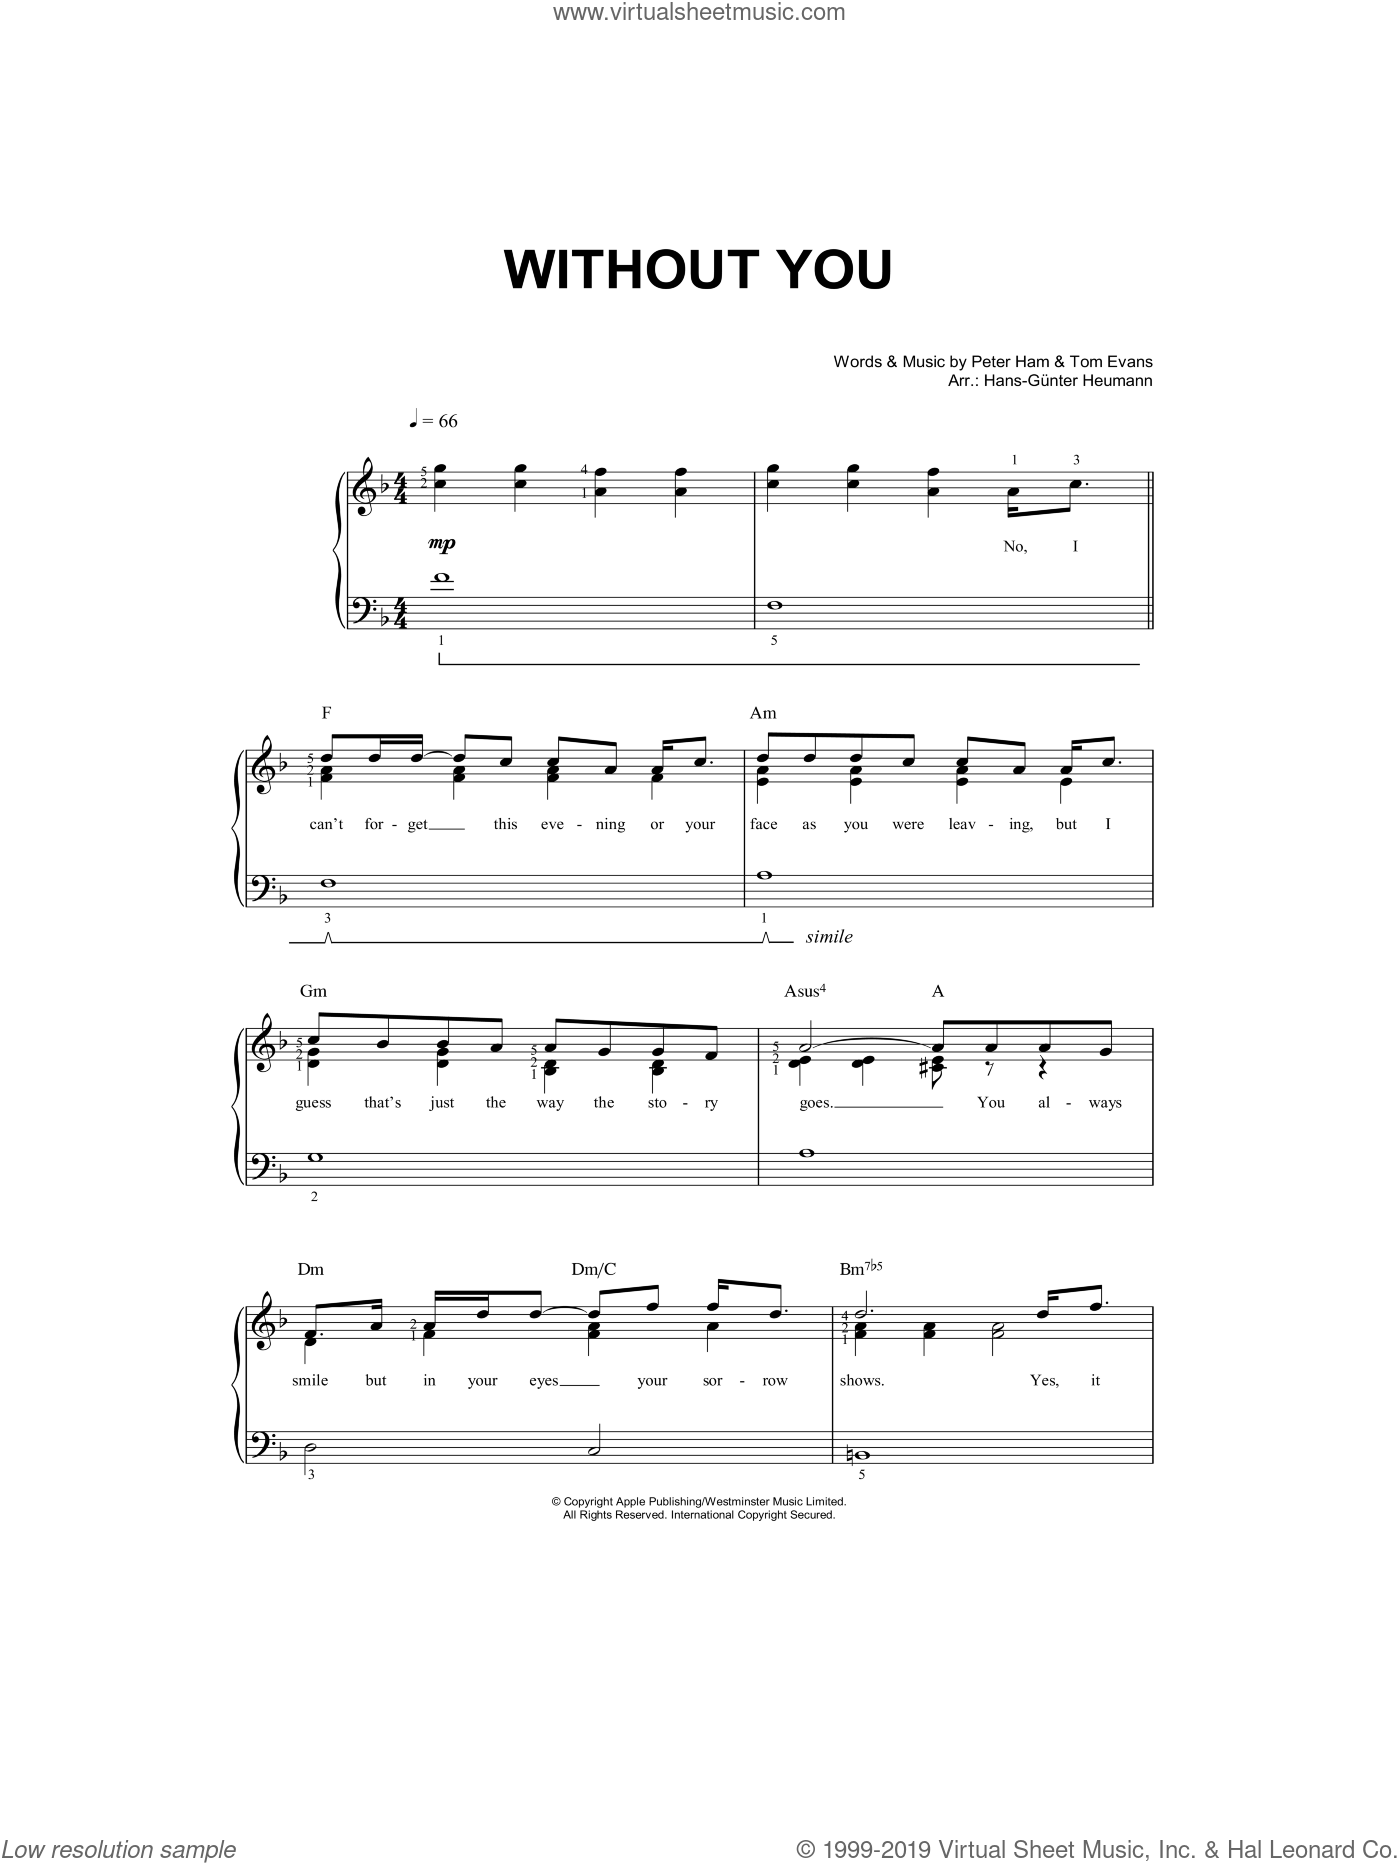 Without You sheet music for piano solo (chords) by Pete Ham